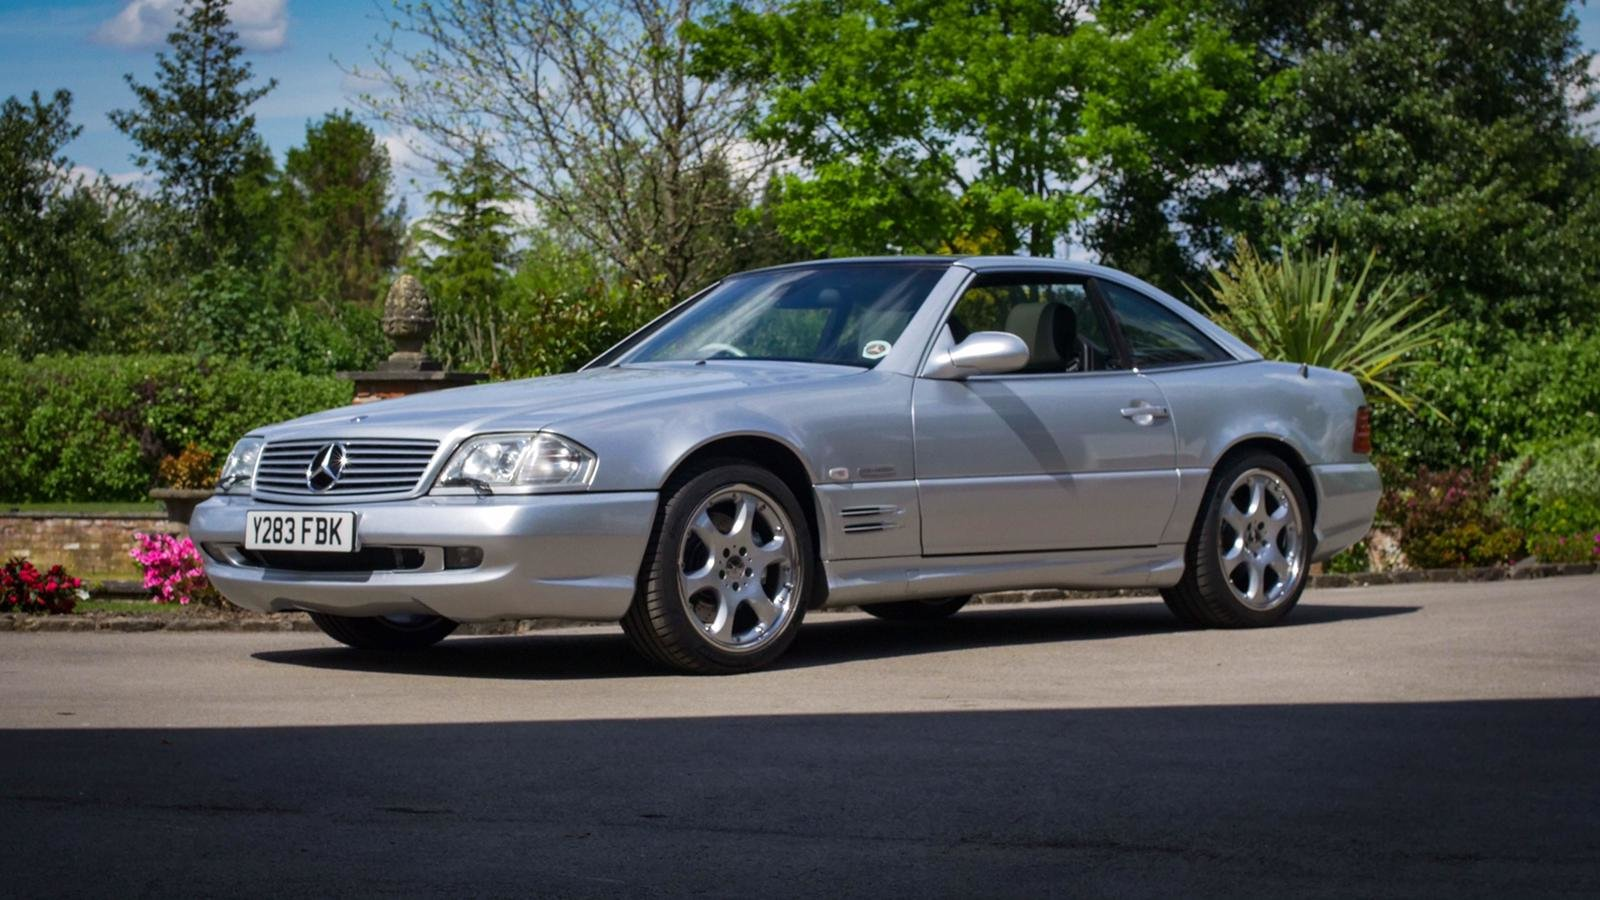 2001 SL500 Silver Arrow For Sale (picture 1 of 6)